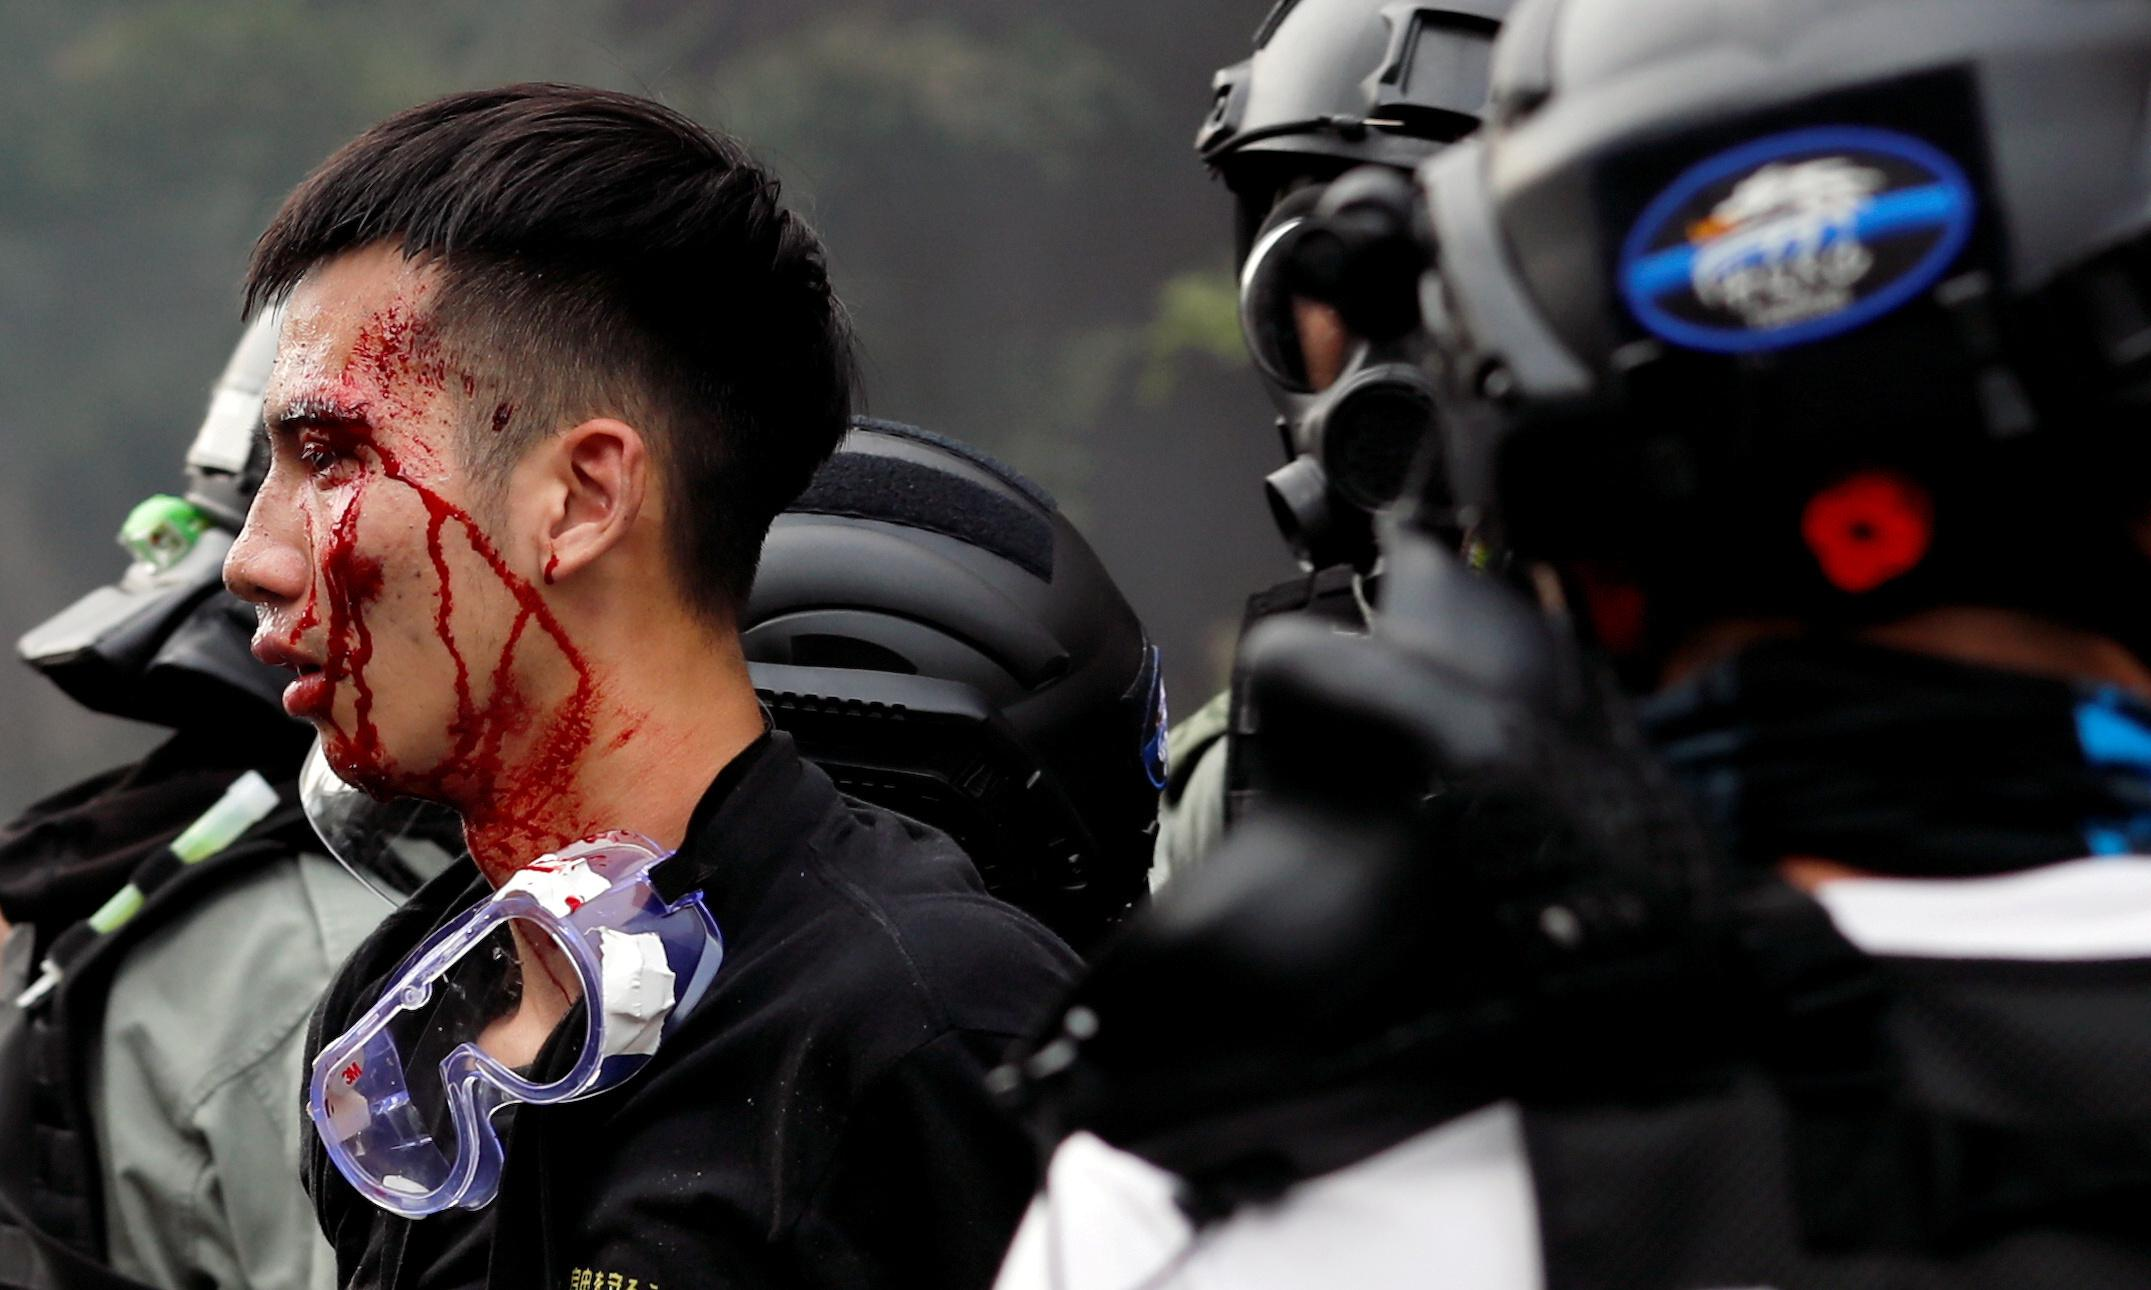 Hong Kong has declared war against its young people